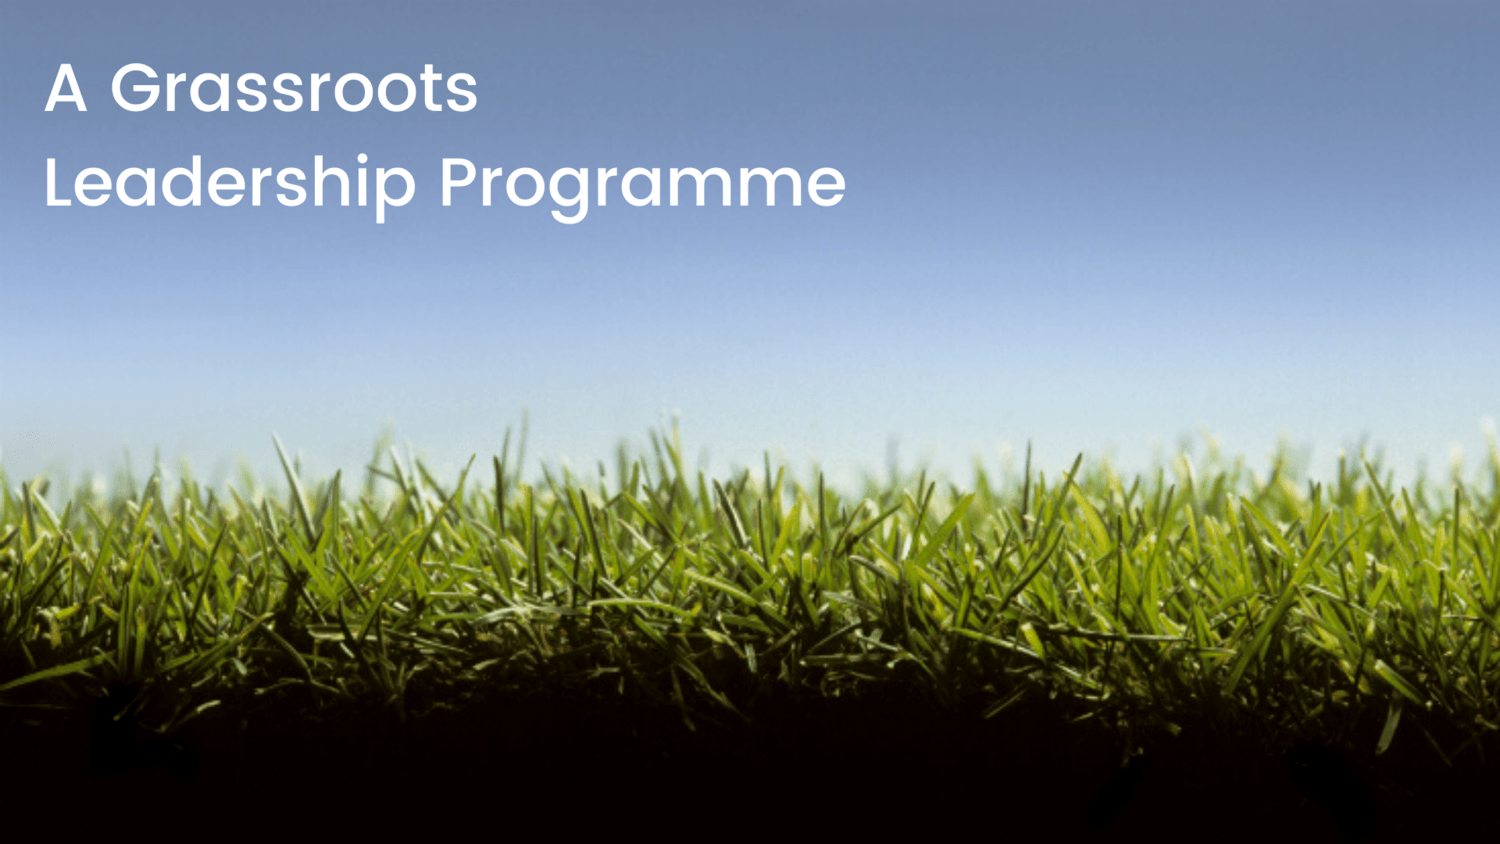 Sign up to our Grassroots Leadership Programme